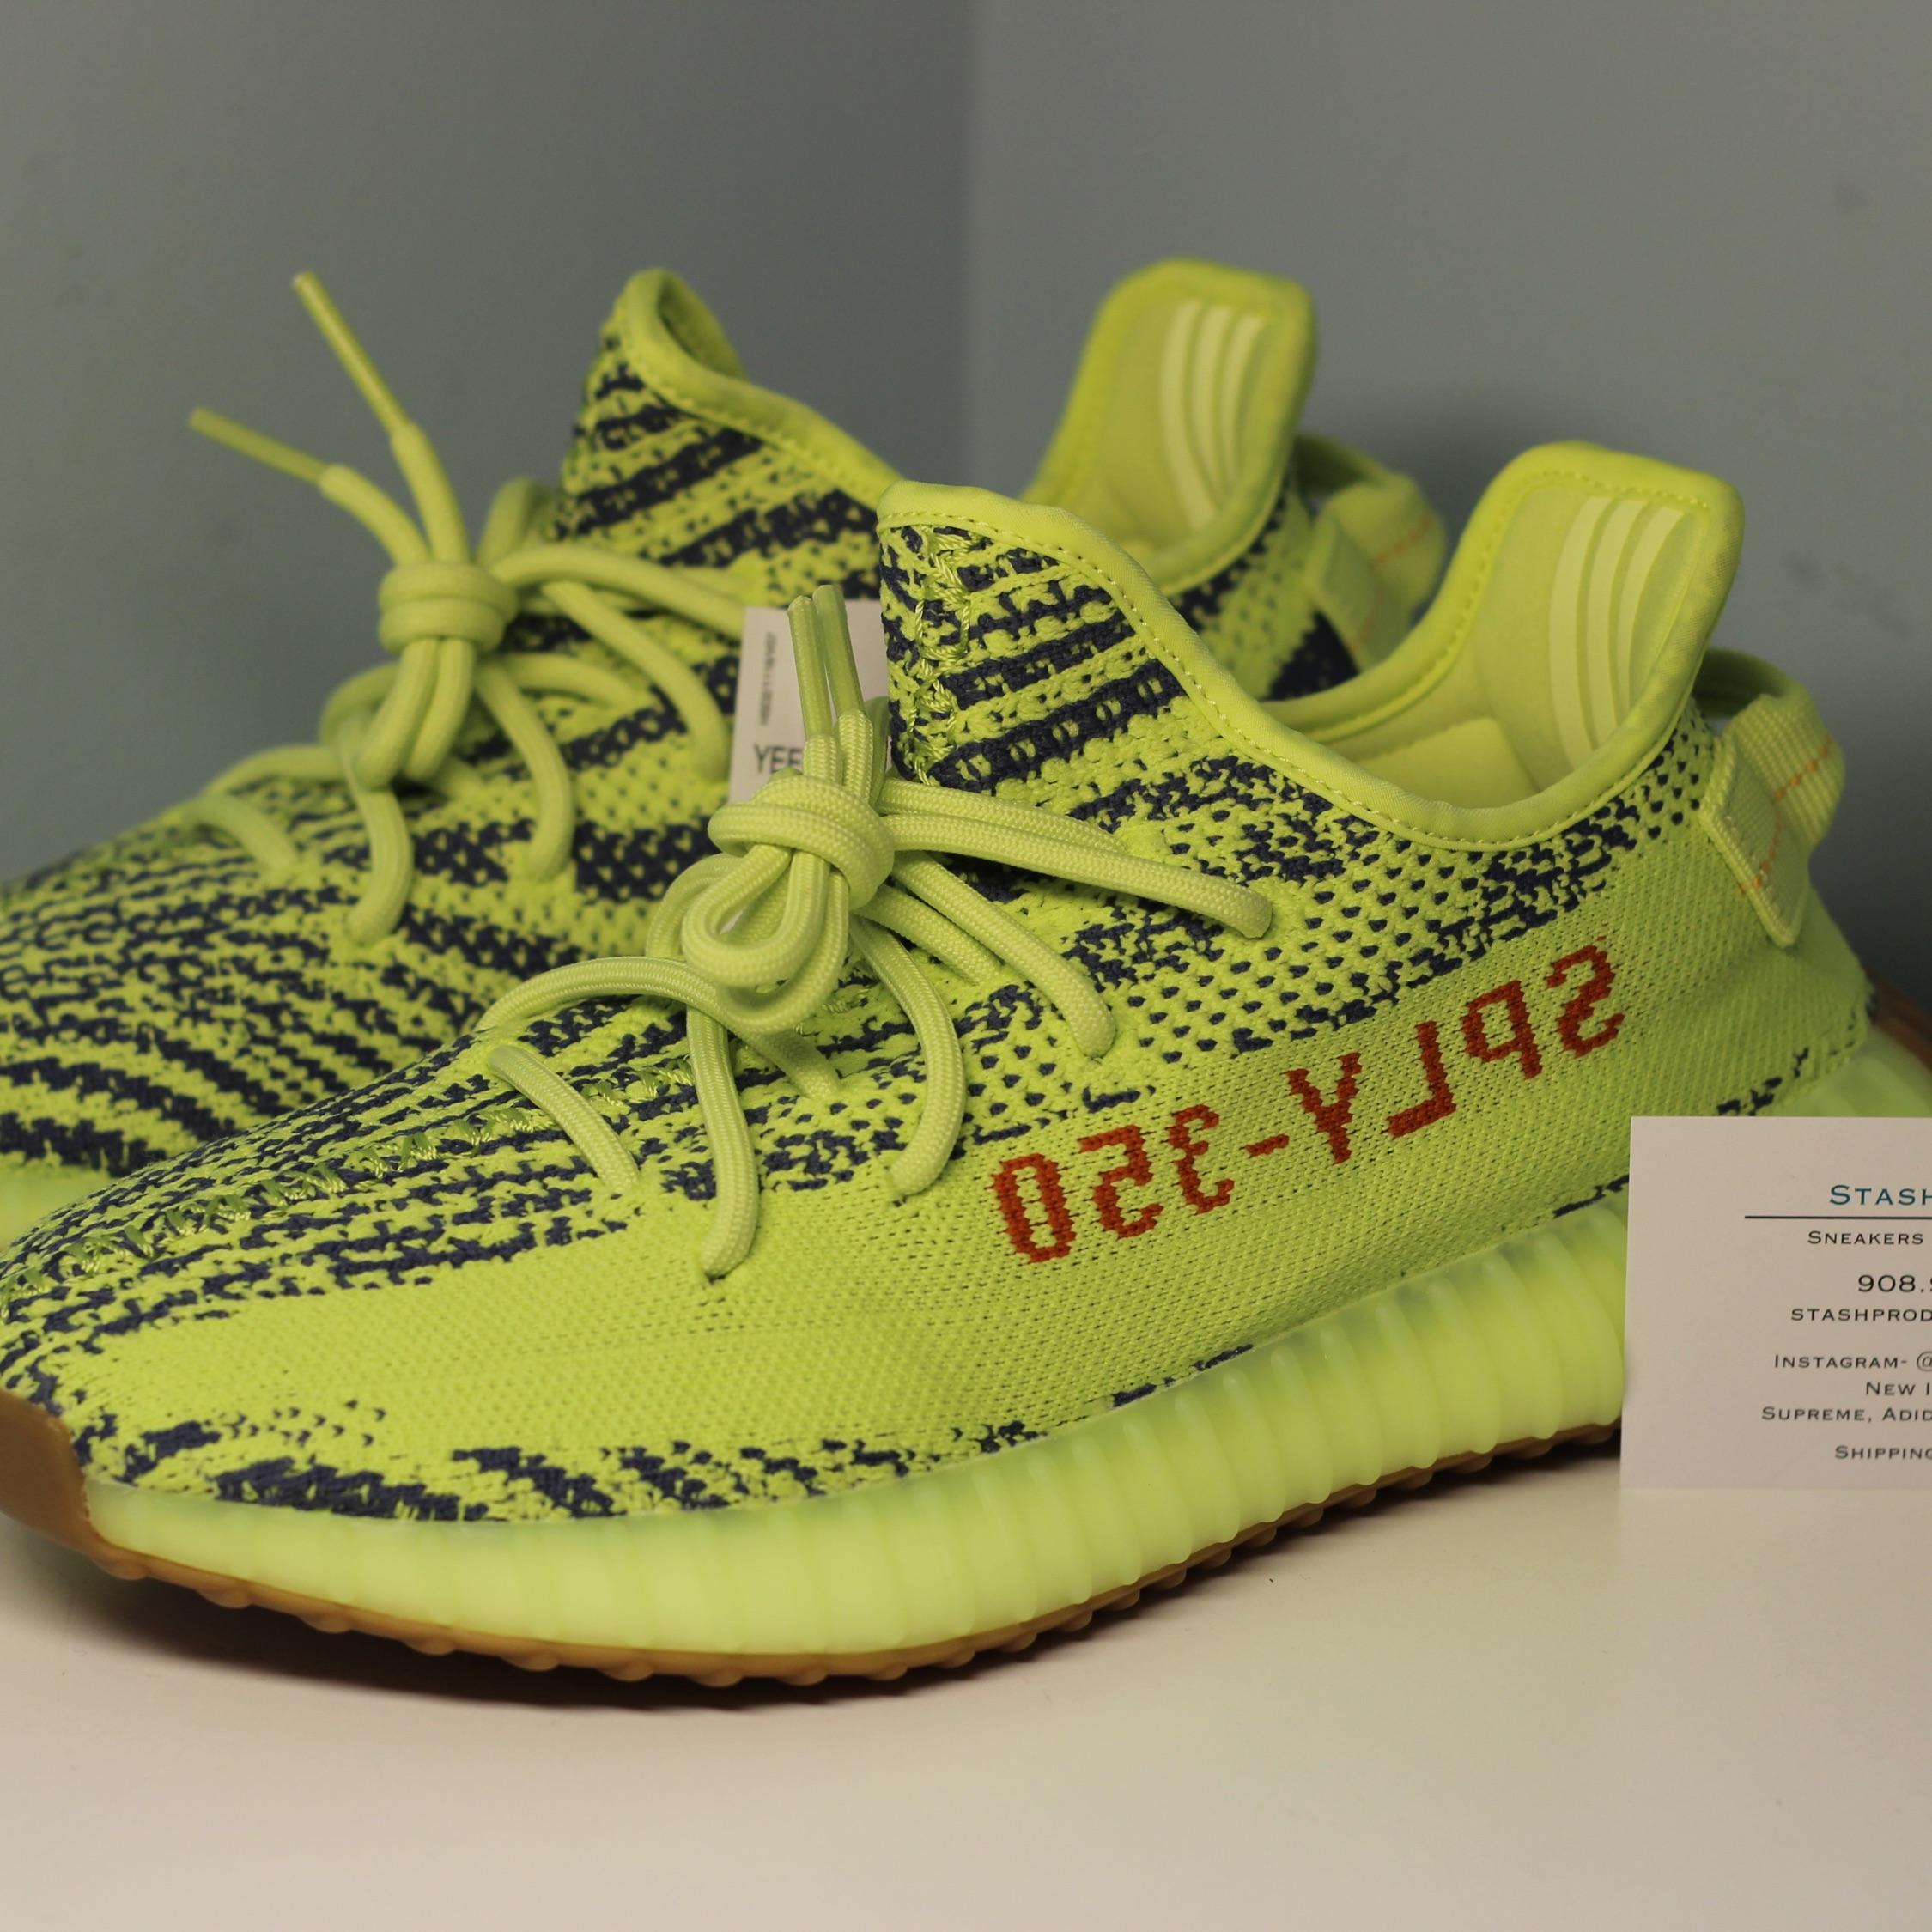 new product d79a0 4e562 Adidas Yeezy Boost 350 V2 Semi Frozen Yellow Kanye